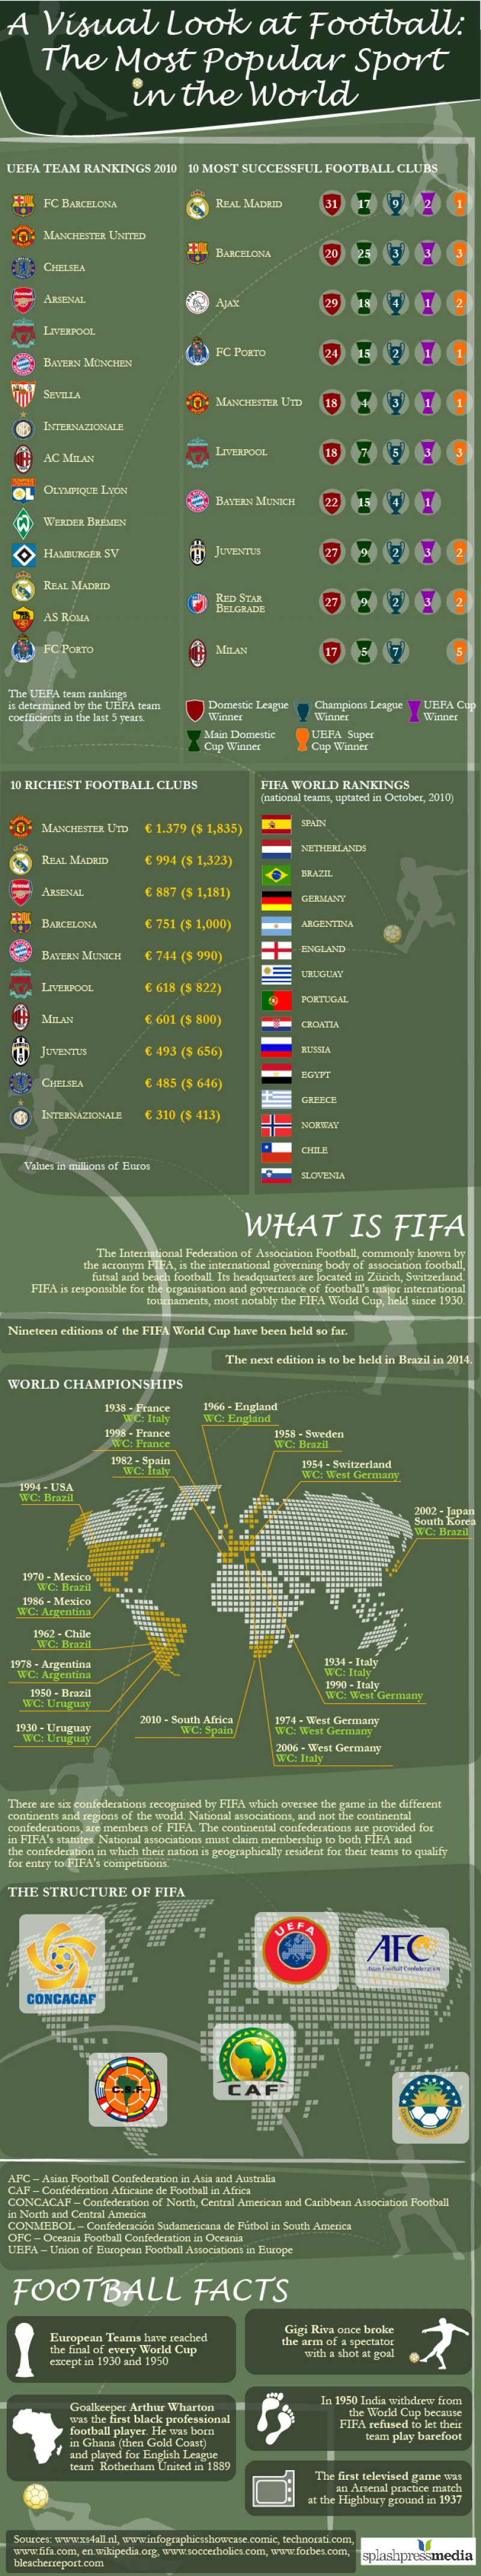 A Visual Look at Football the Most Popular Sport in the World